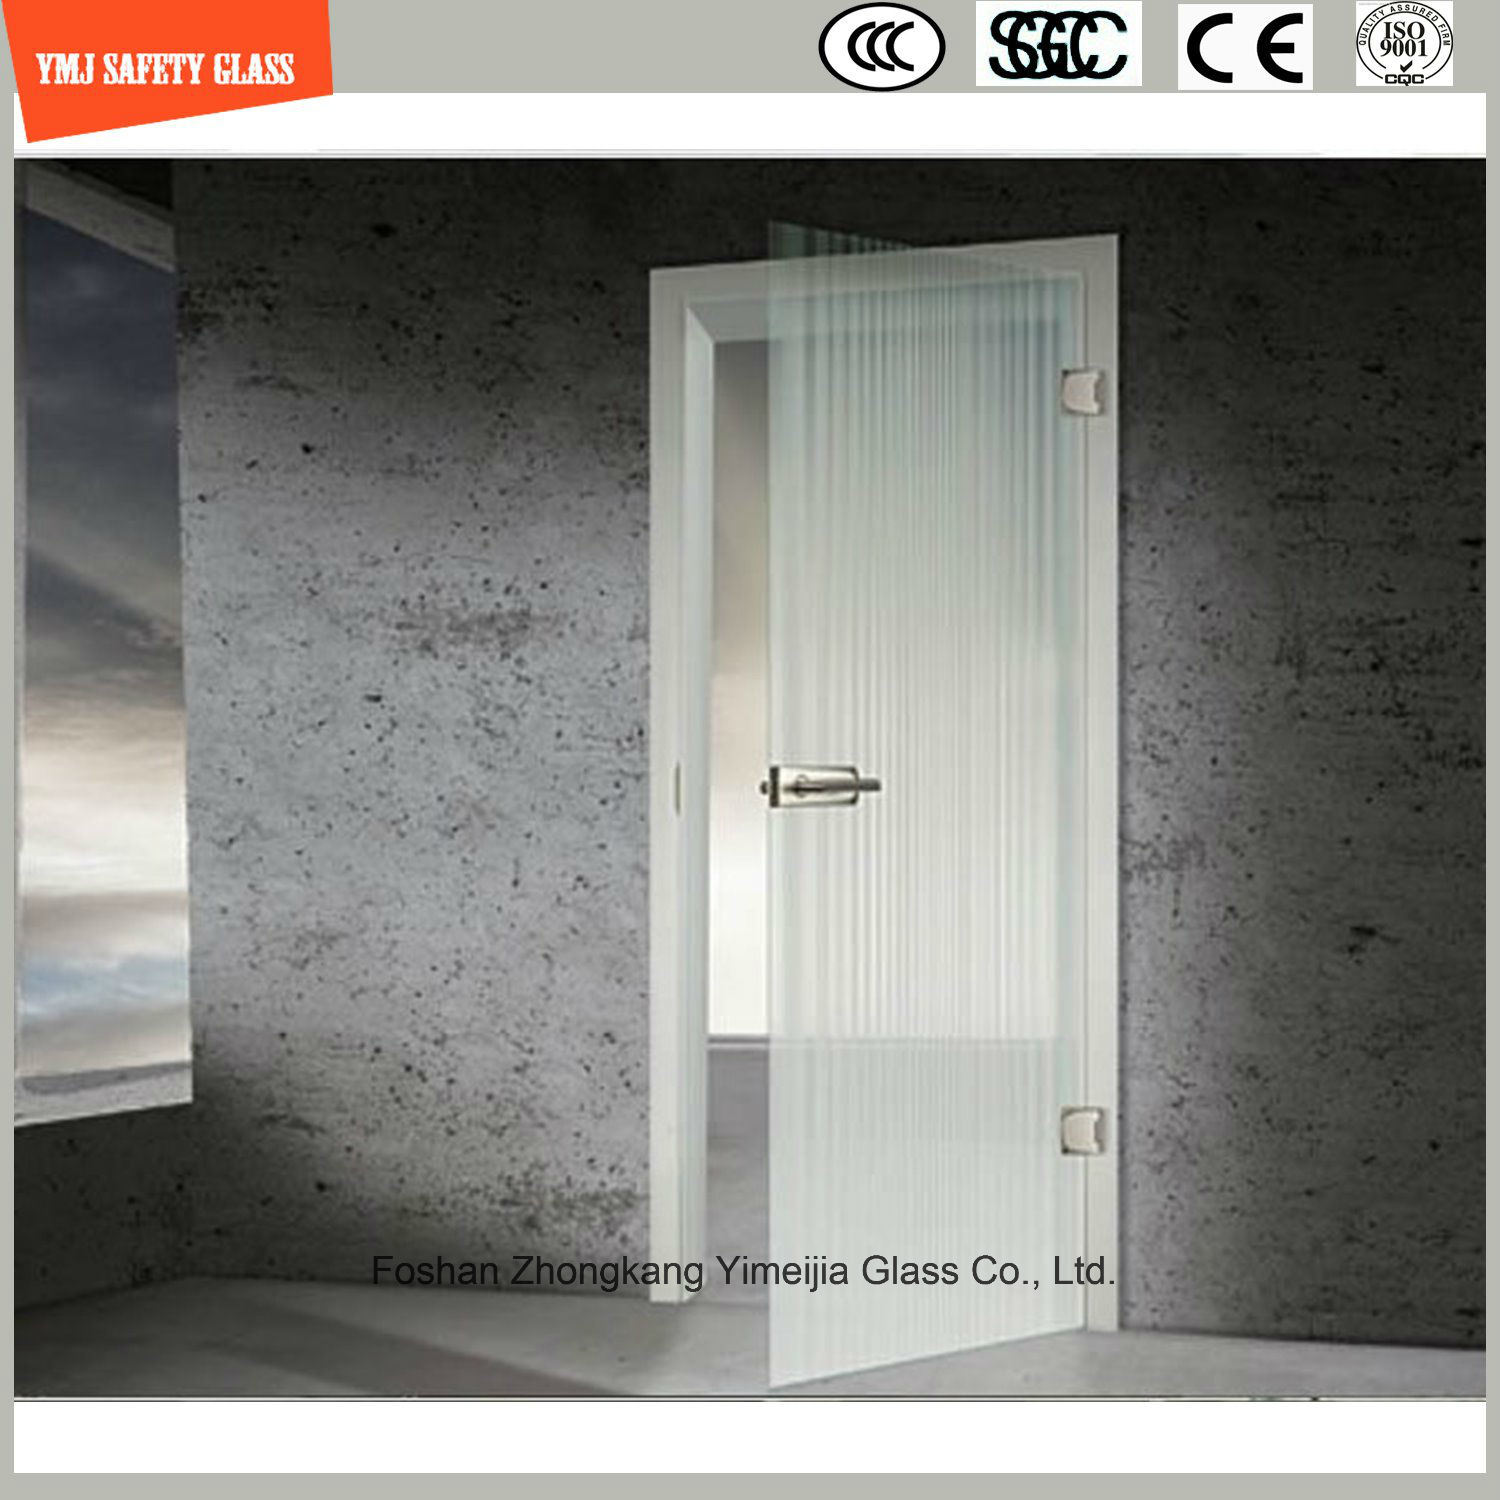 3-19mm Silkscreen Print/Acid Etch/Frosted/Pattern Flat/Bent Tempered/Toughened Glass for Door/Window/Shower Door in Hotel and Home